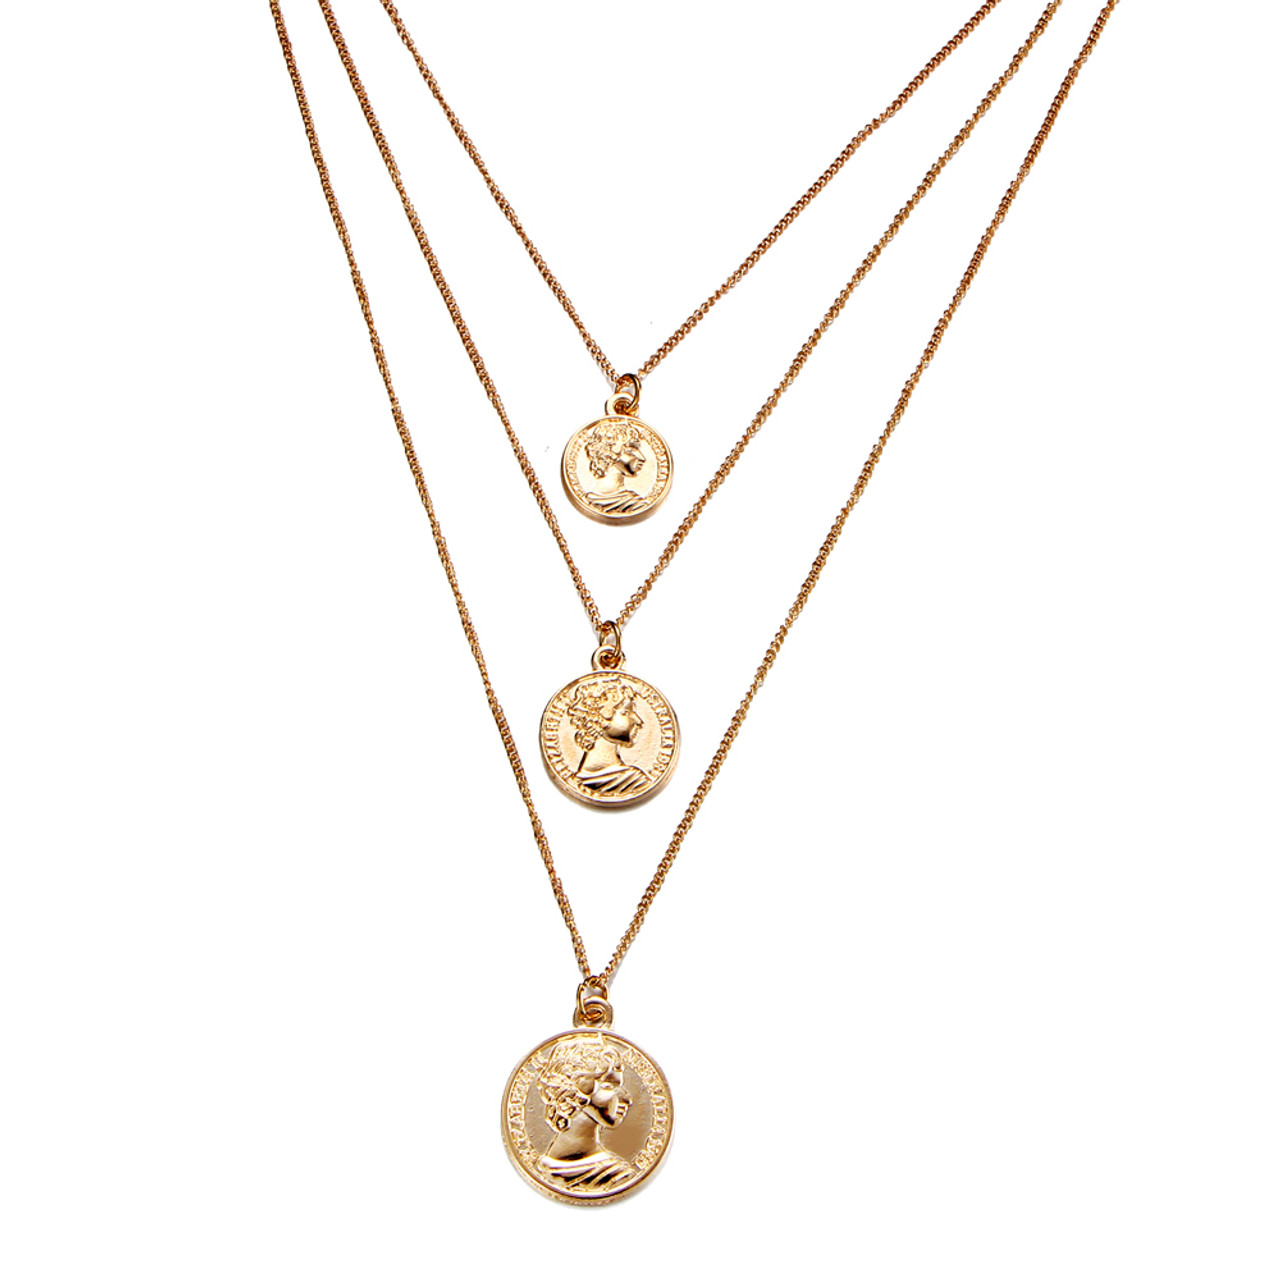 81c802b60dbe3 Delicate Triple Chain Necklace for Women Bohemian Vintage Gold Silver Color  Coins Pendant Necklace Fashion Jewelry